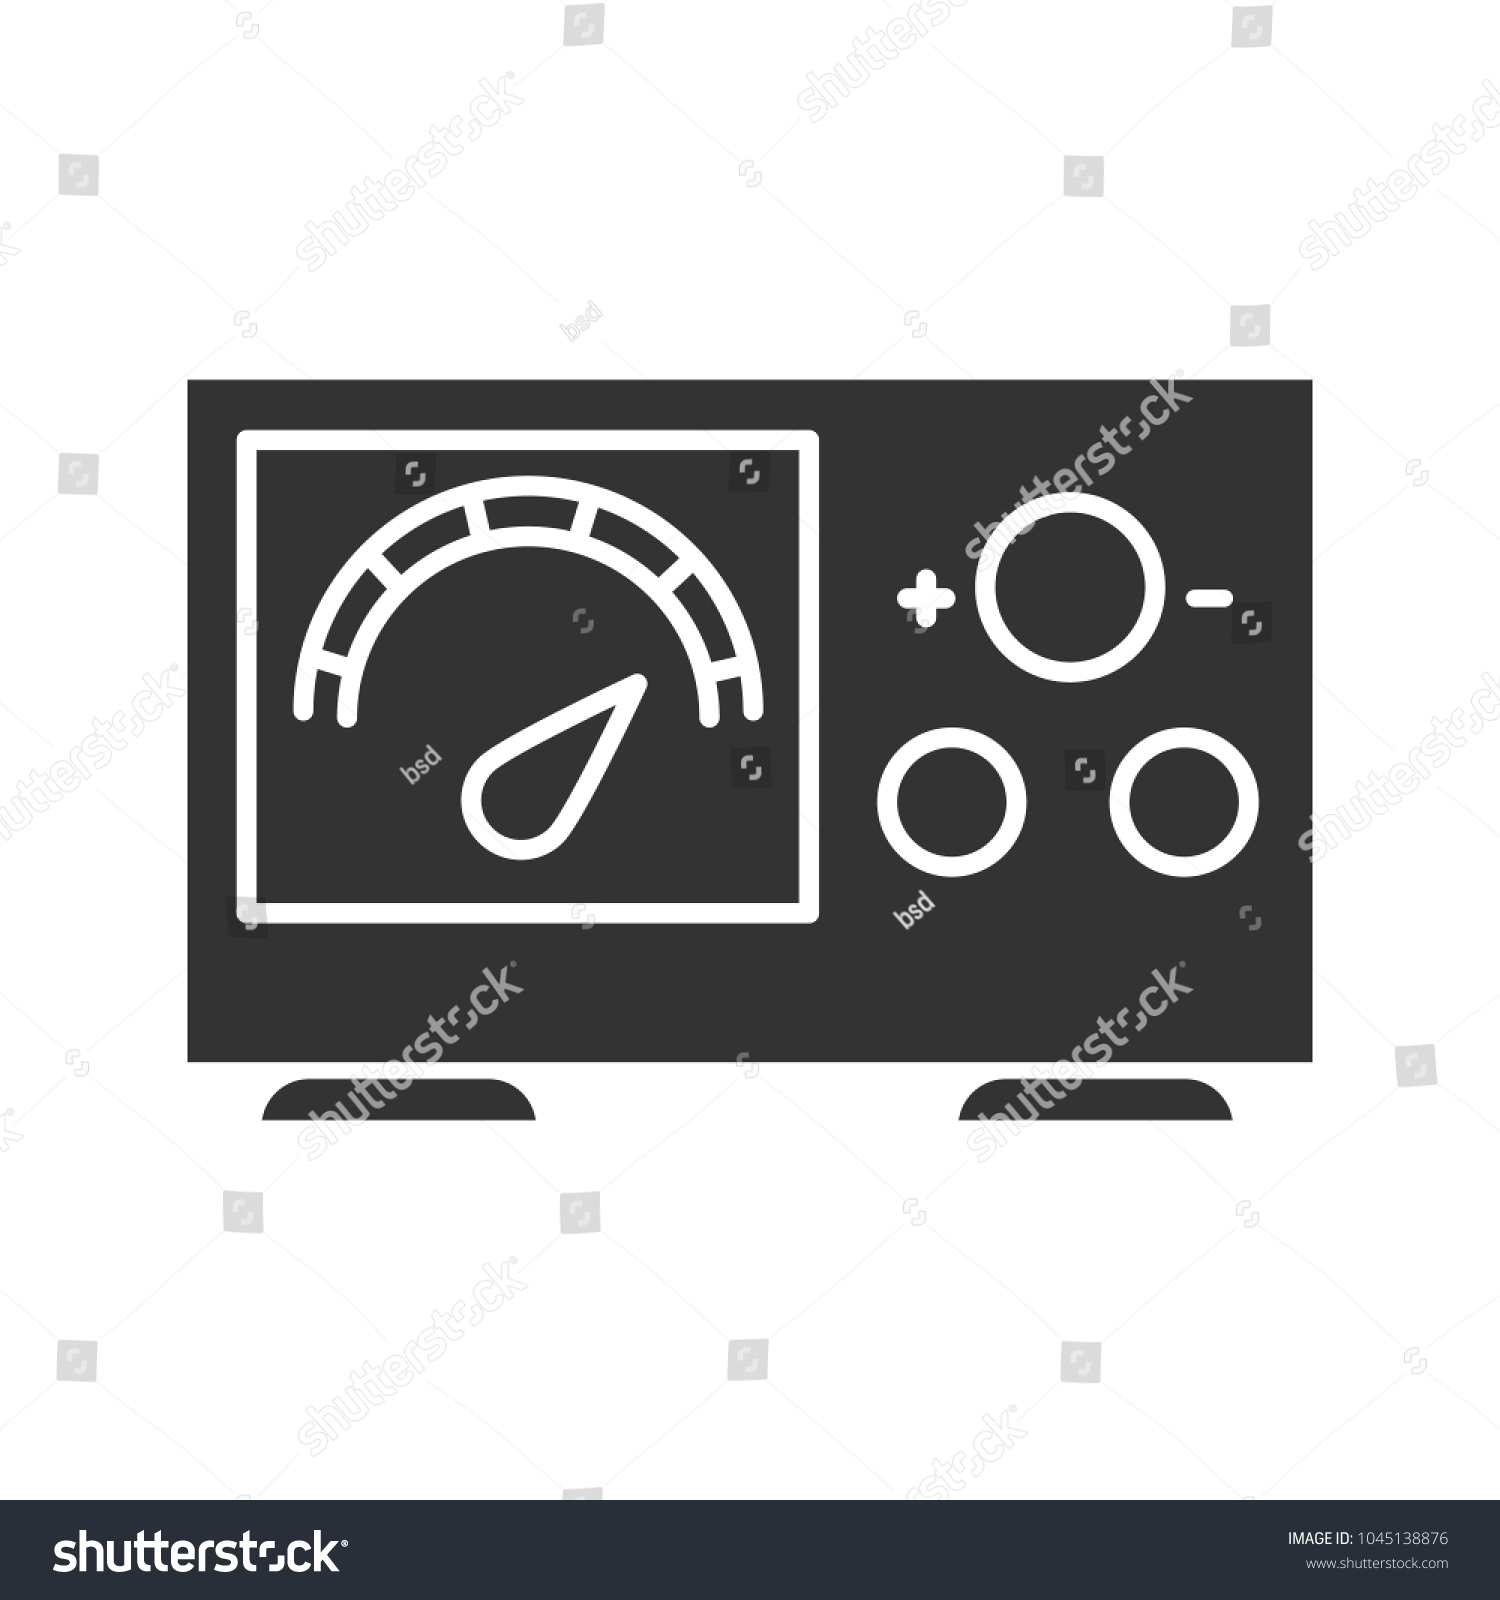 Attractive Voltage Meter Symbols Ensign - Everything You Need to ...